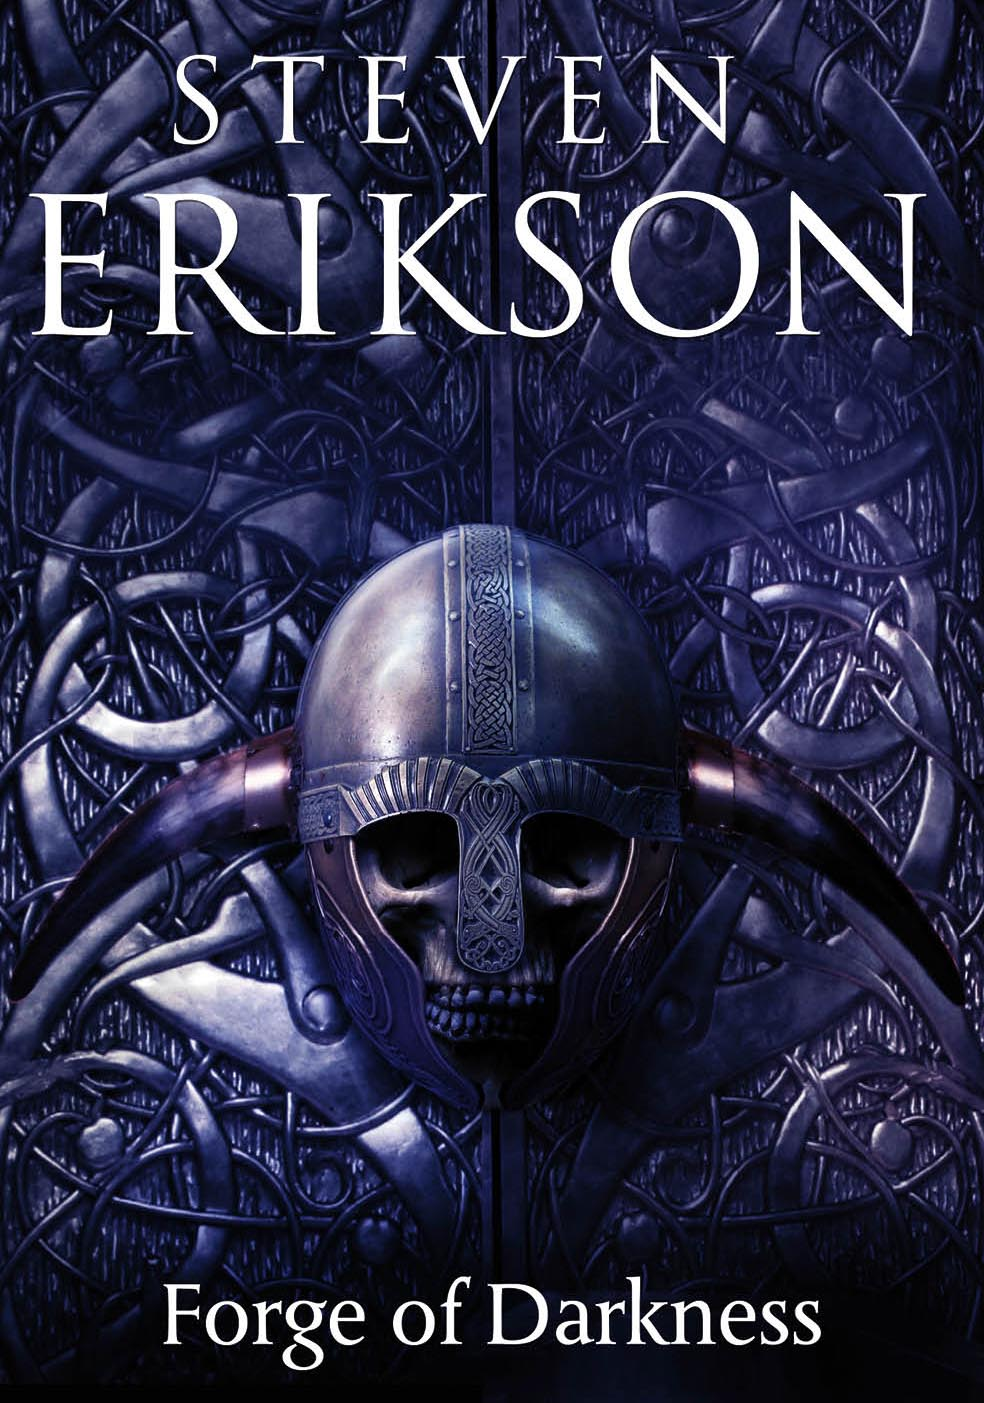 Cover for new Malazan book Forge of Darkness by Steven Erikson